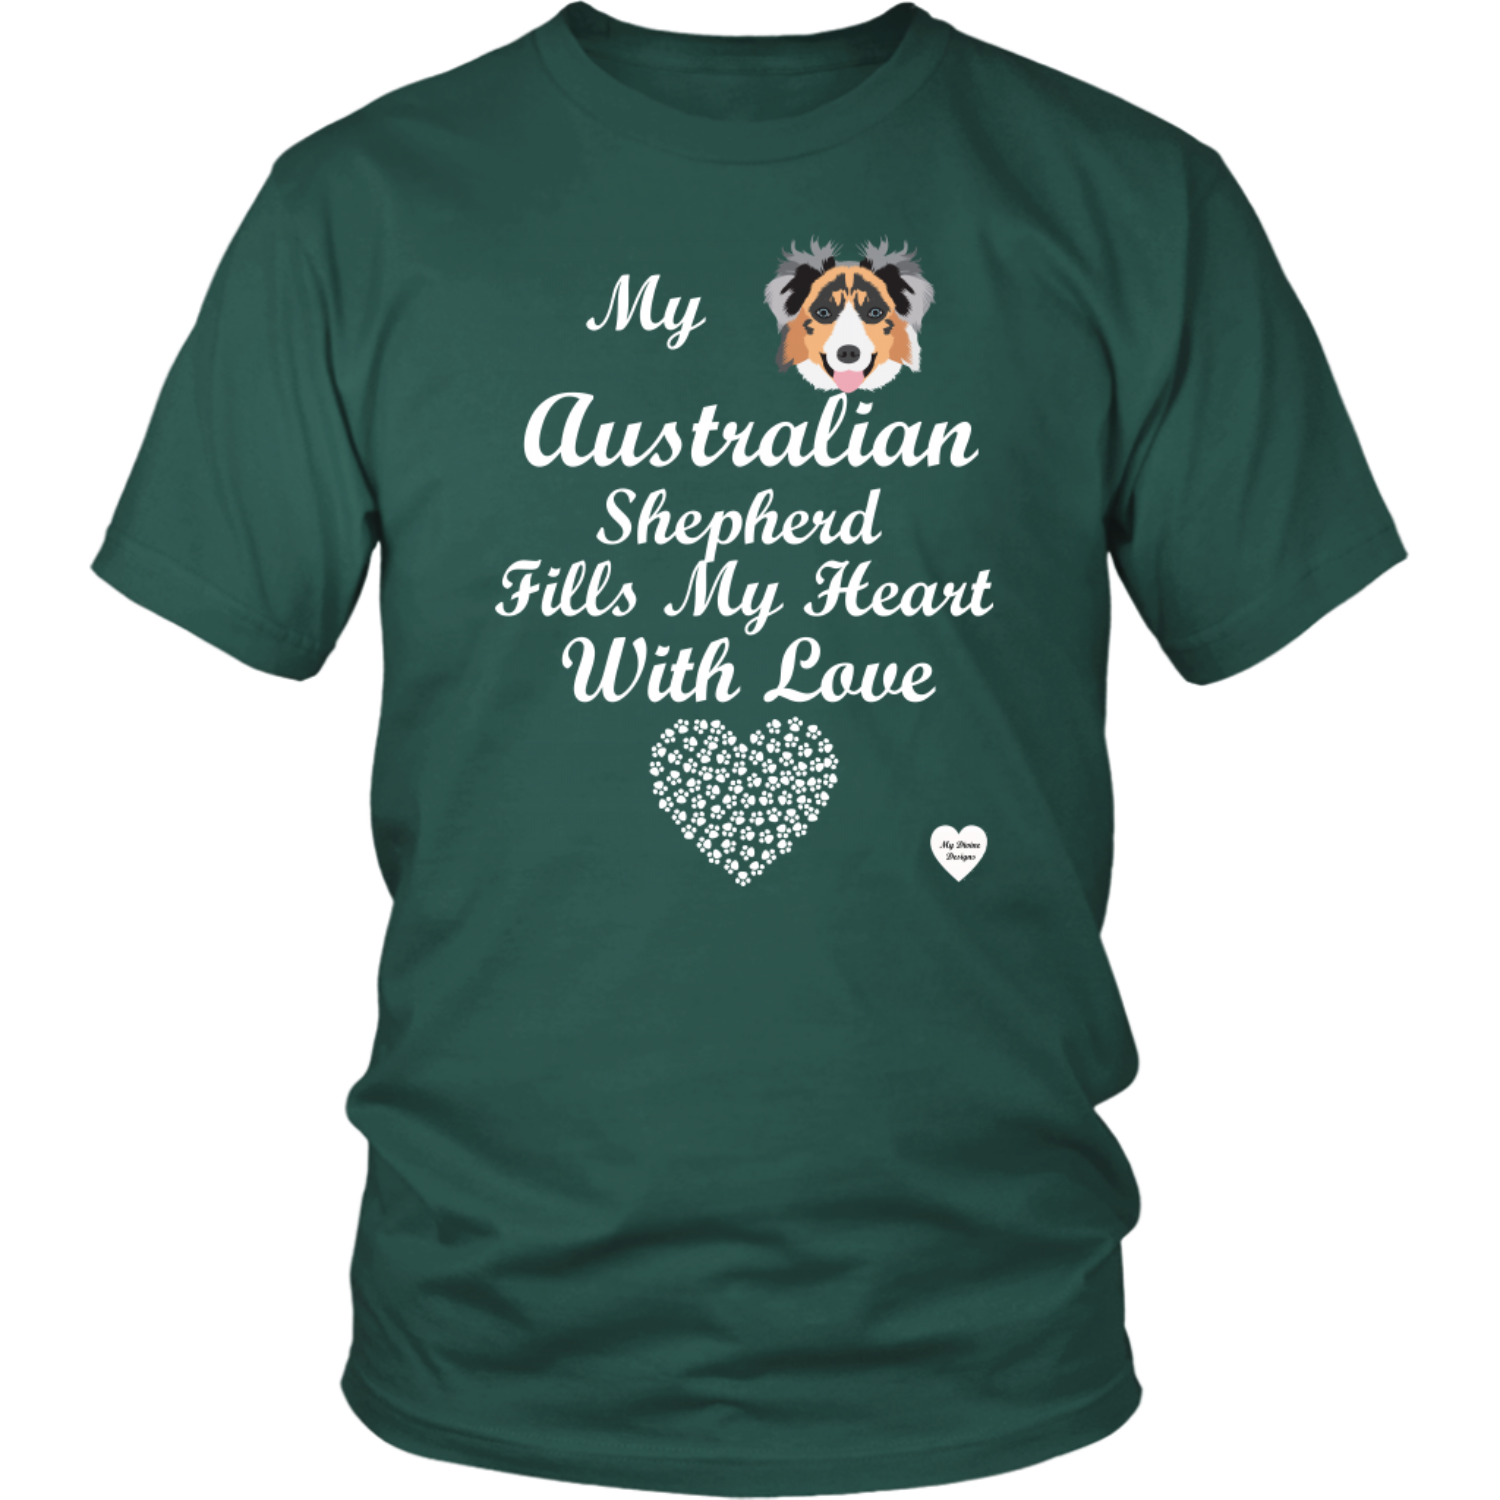 australian shepherd fills my heart t-shirt dark green